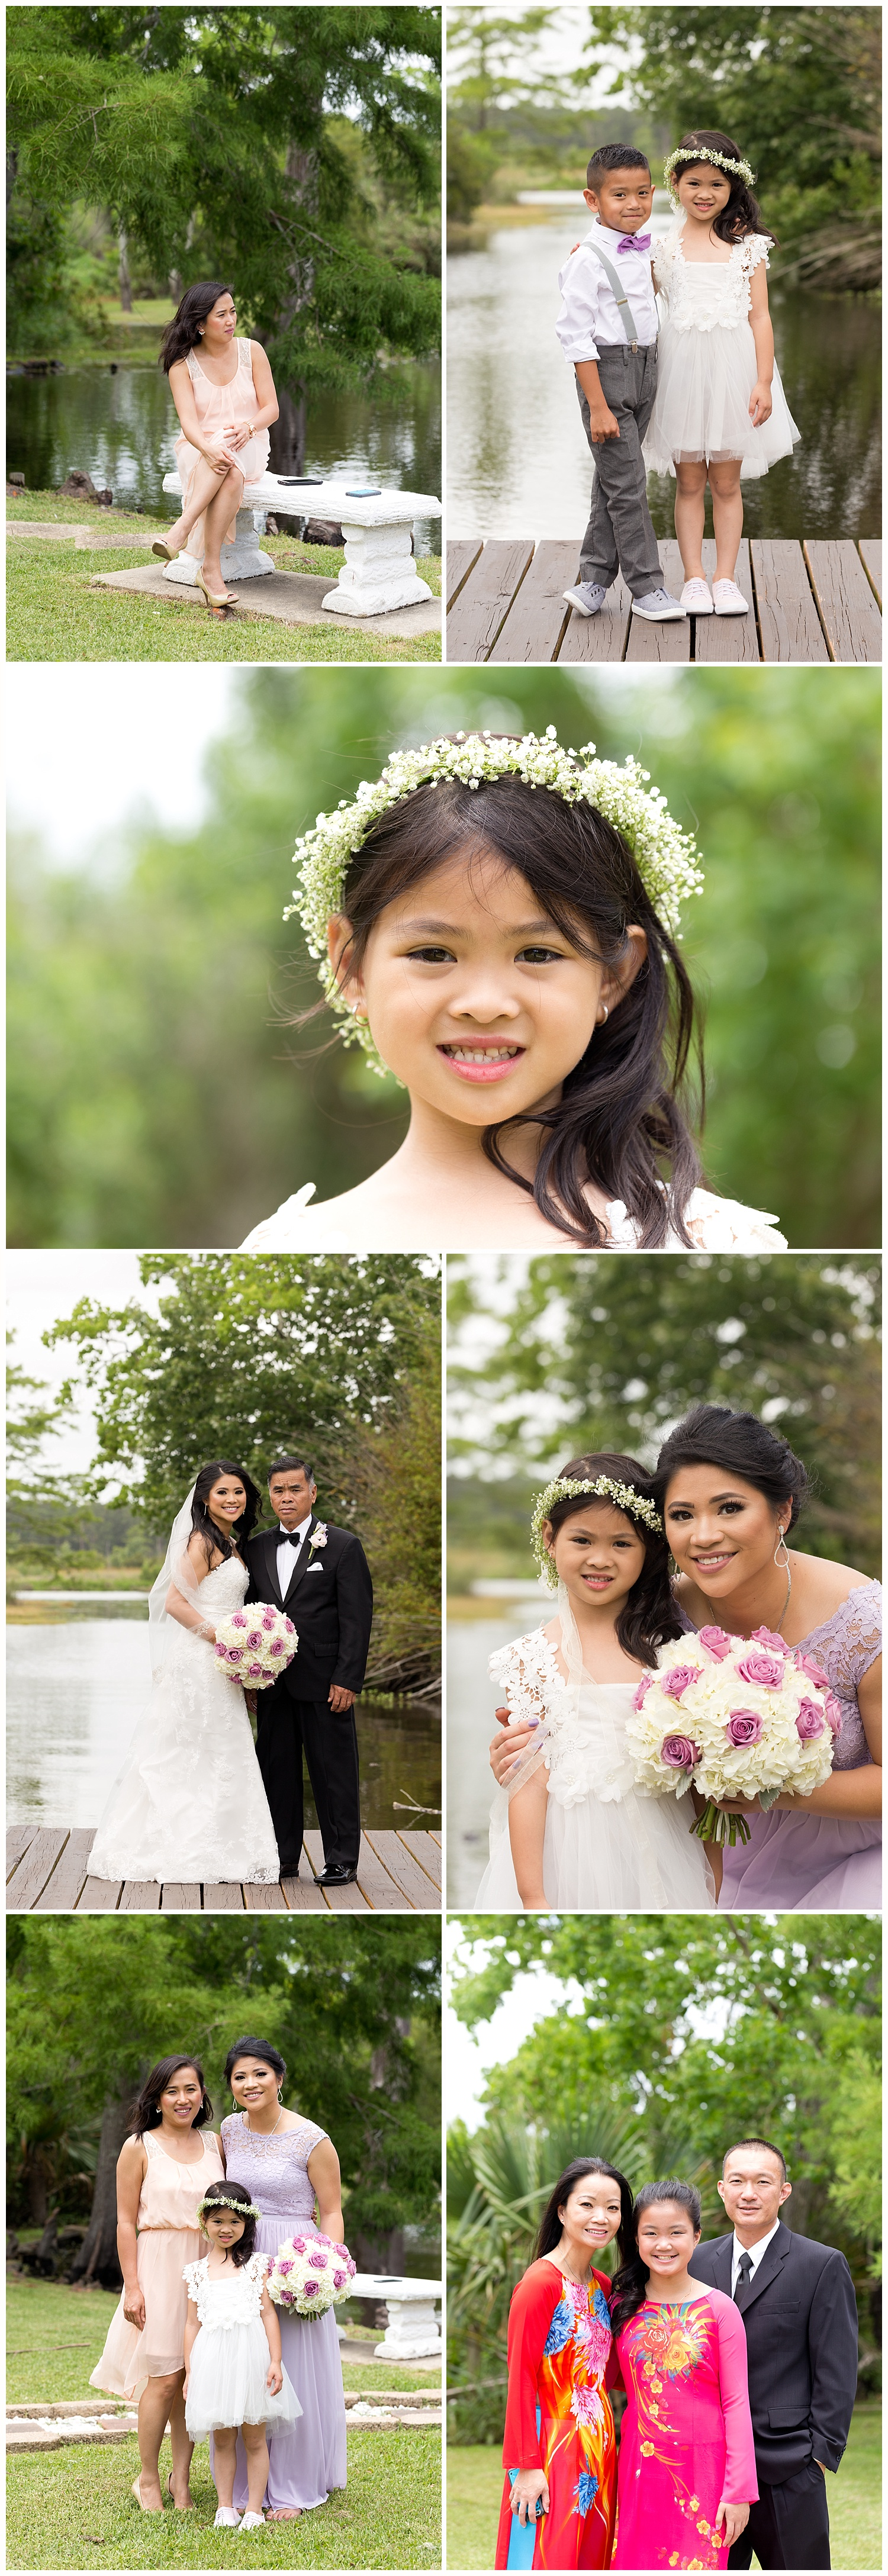 flower girl with flower crown, family photos at New Orleans wedding